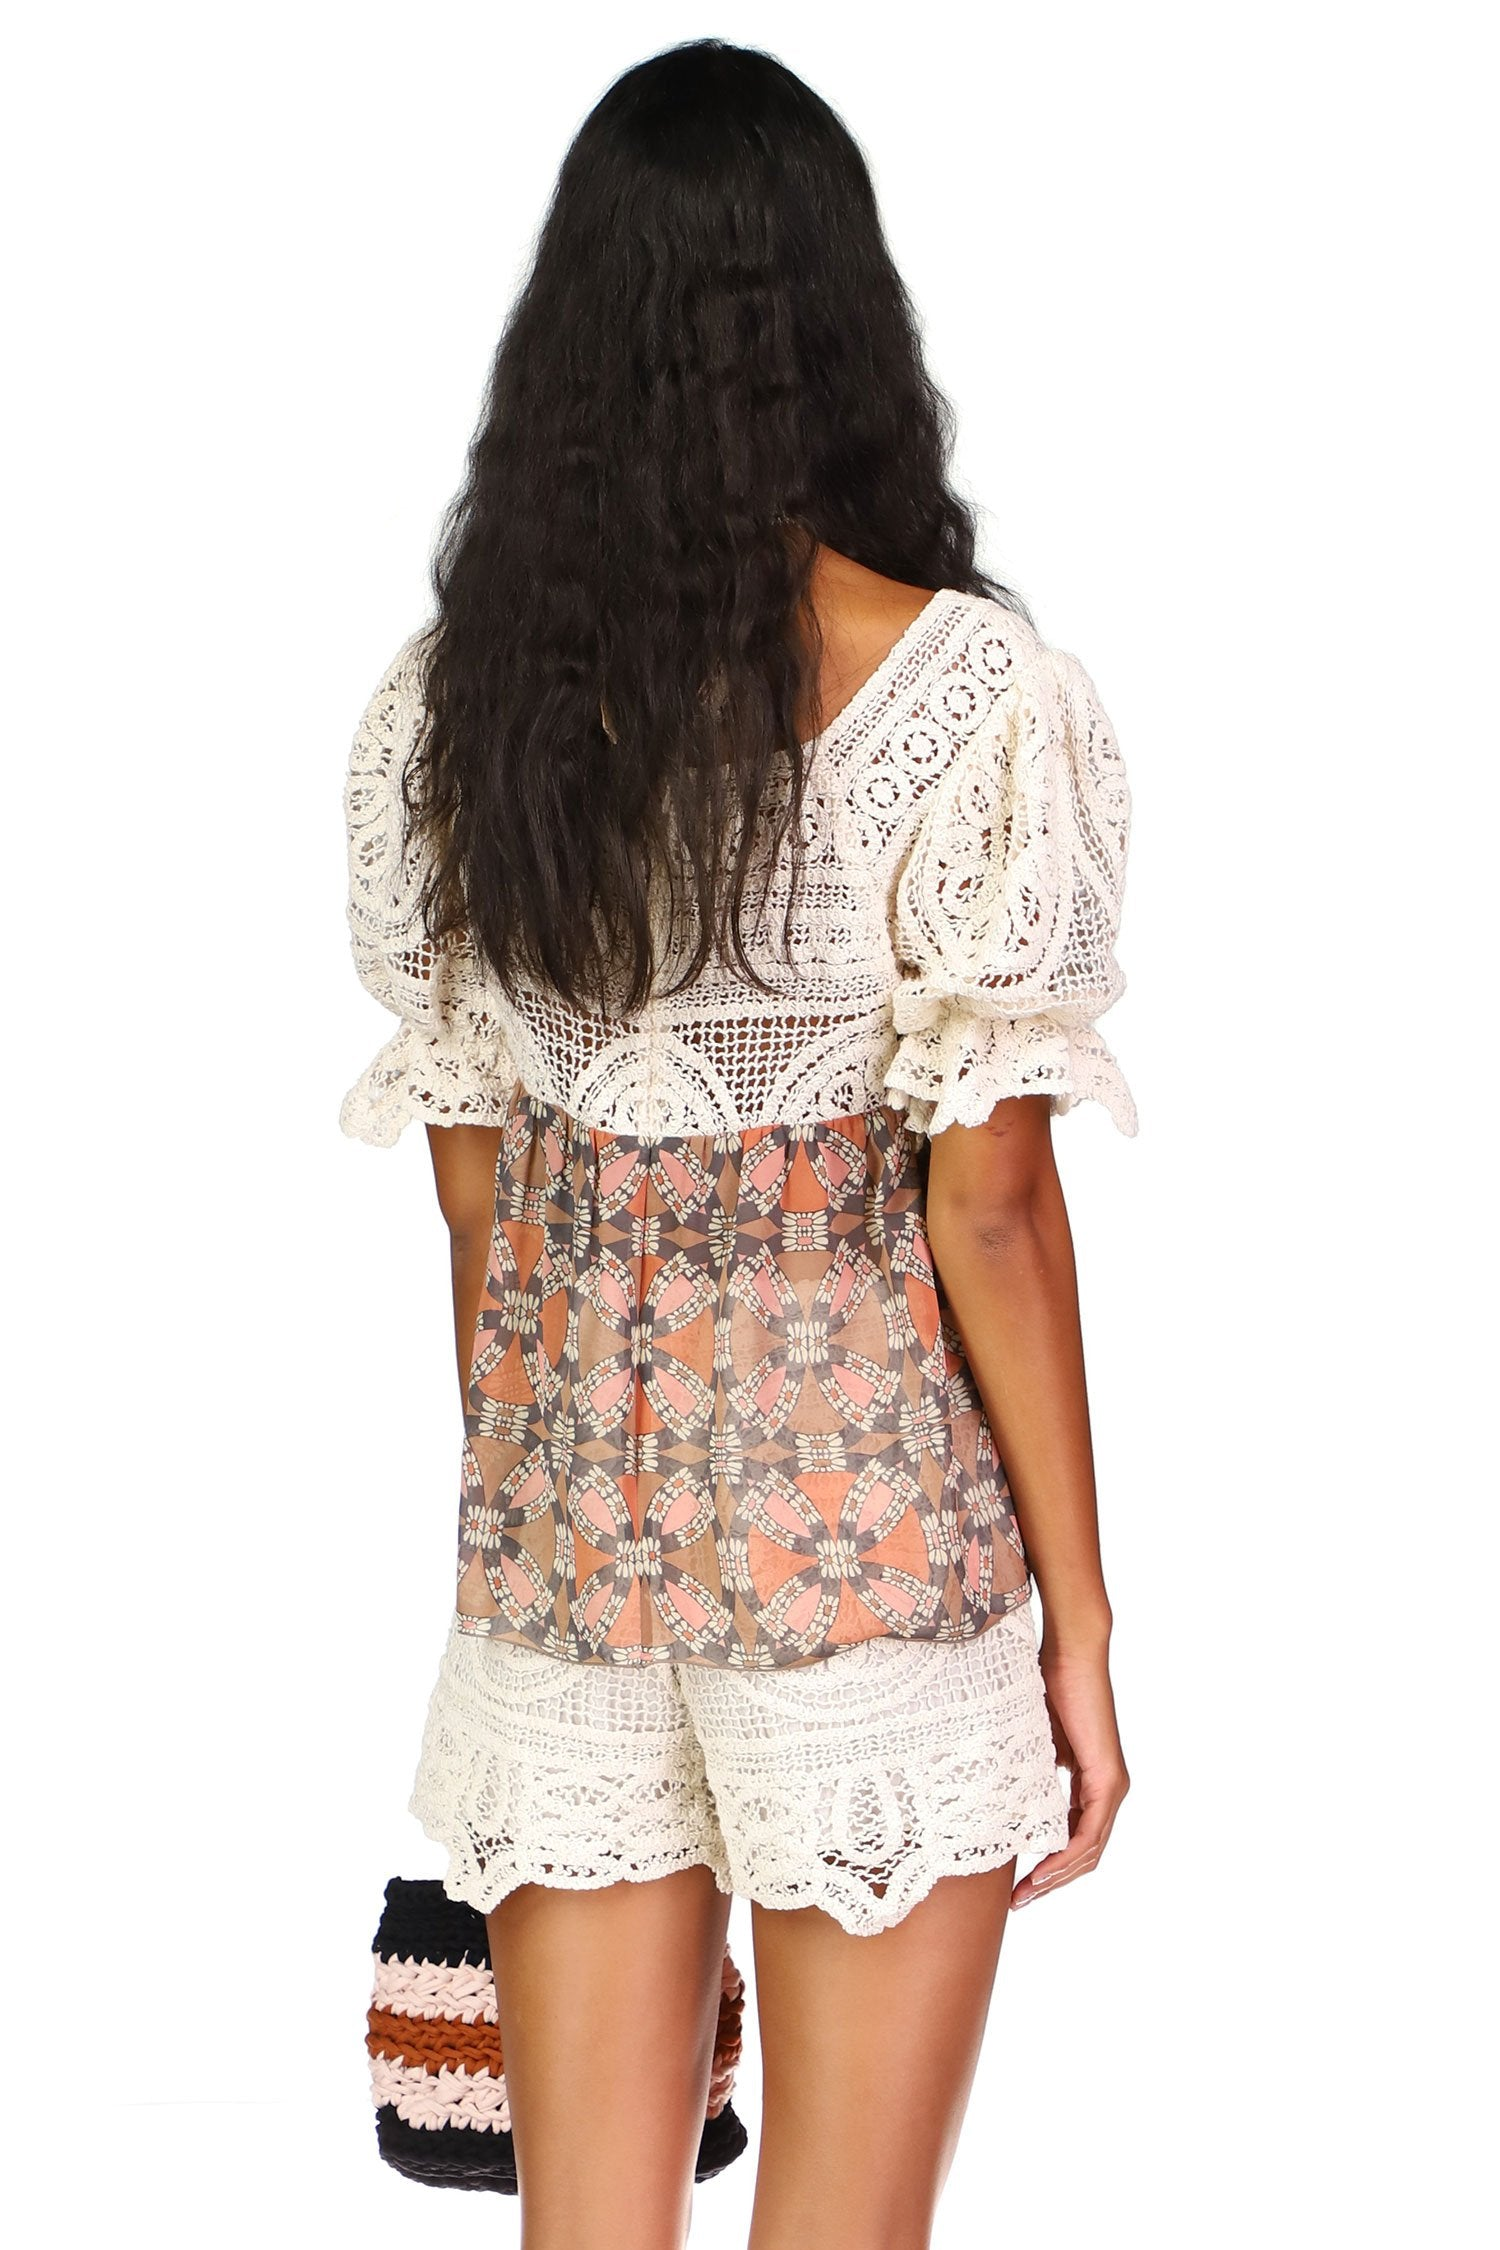 Ring Around the Rosie Lace Top - Anna Sui